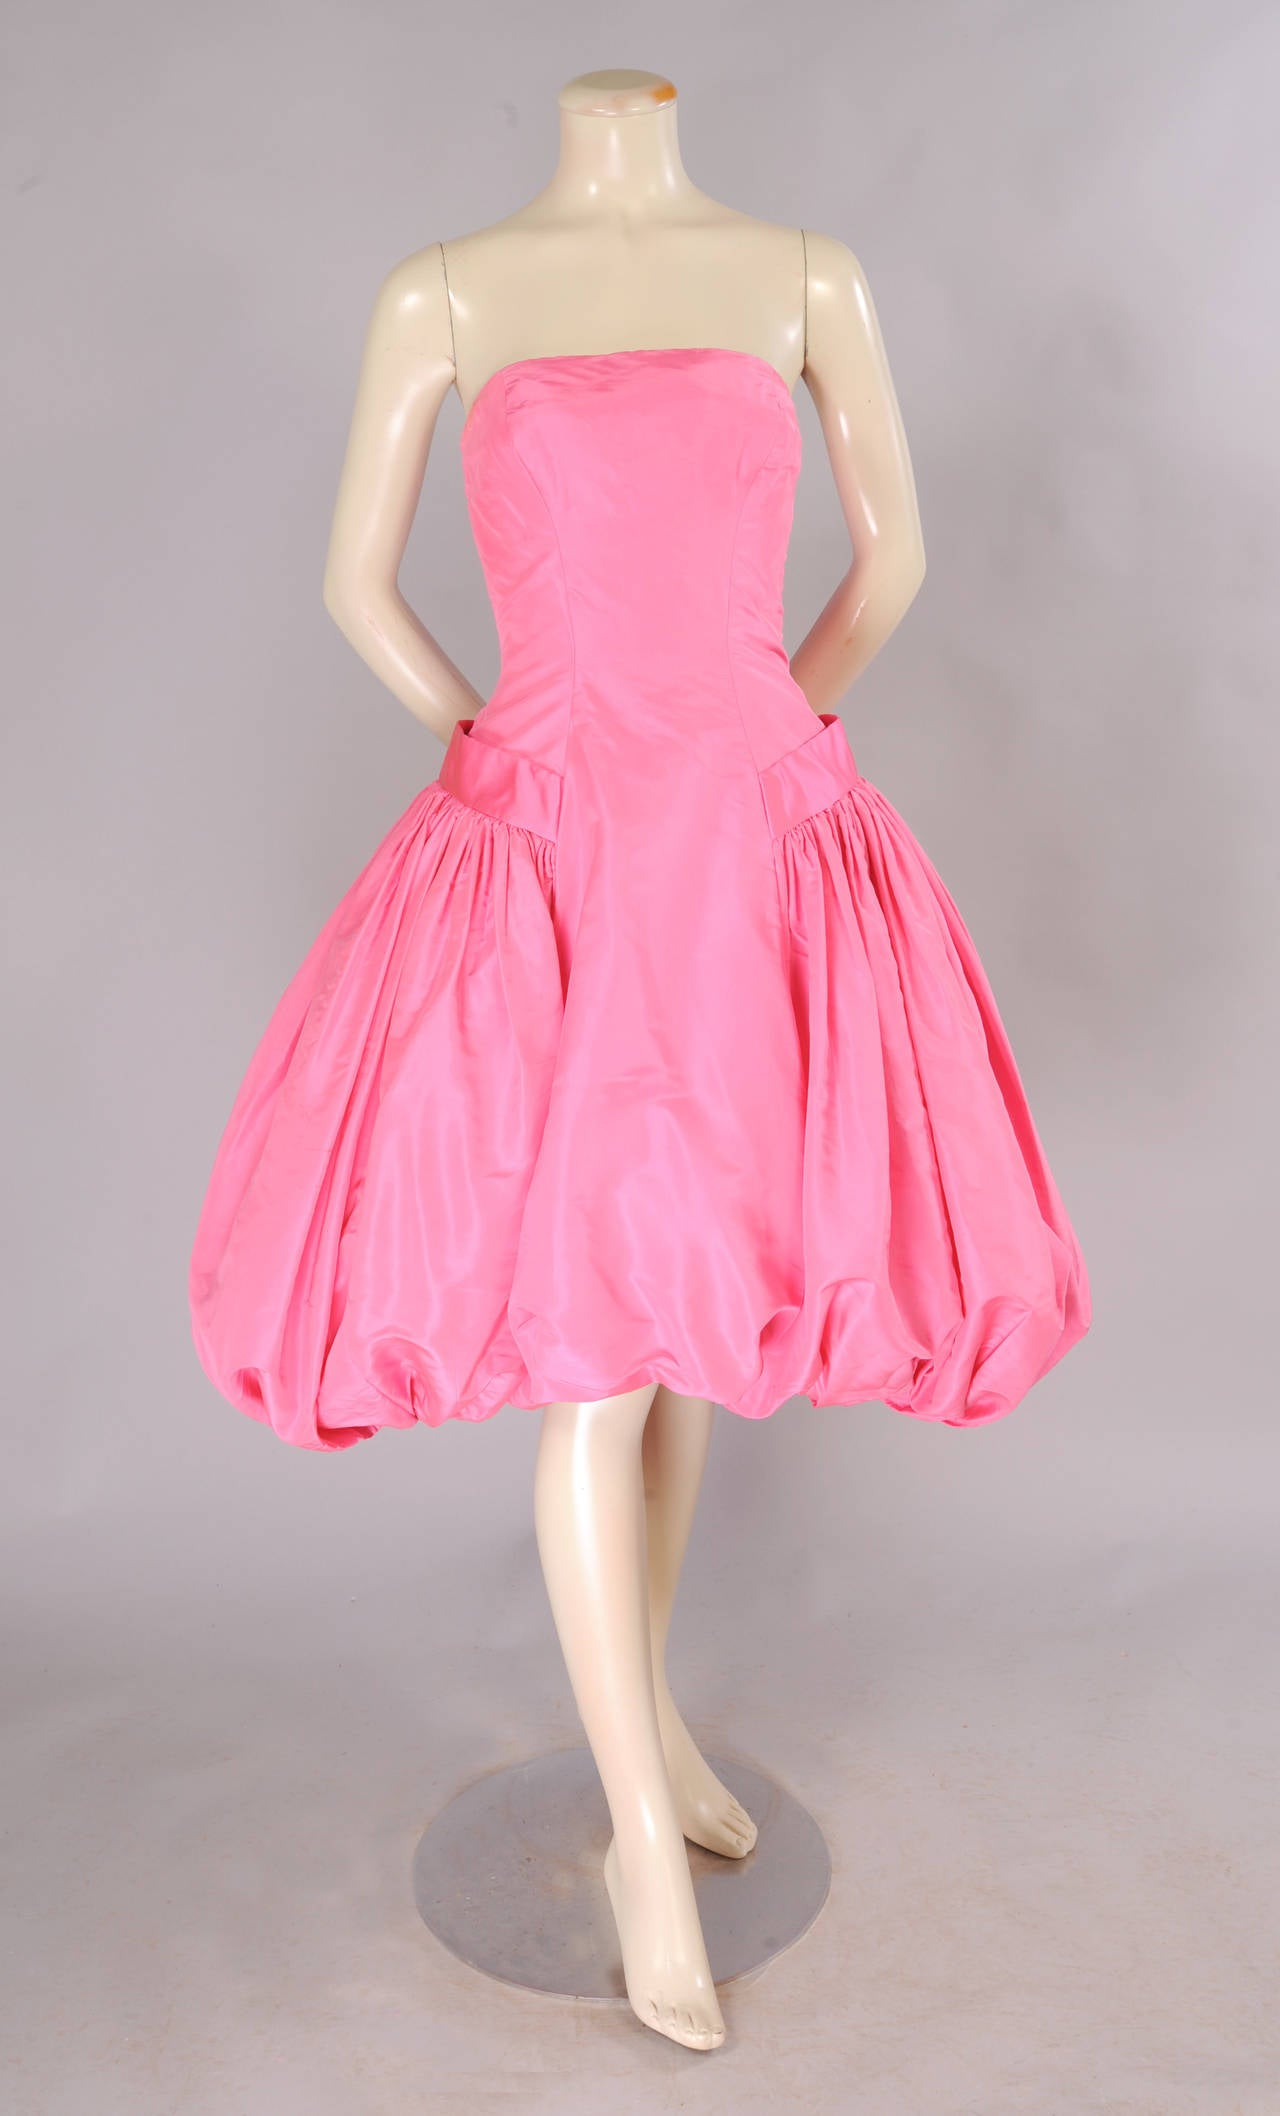 A gorgeous shade of bright pink silk is used to create this glamorous  short evening dress from the 1950's. The dress has a fitted boned bodice, a wide panel at the center front, A horizontal band over each hip terminates in a bow at the center